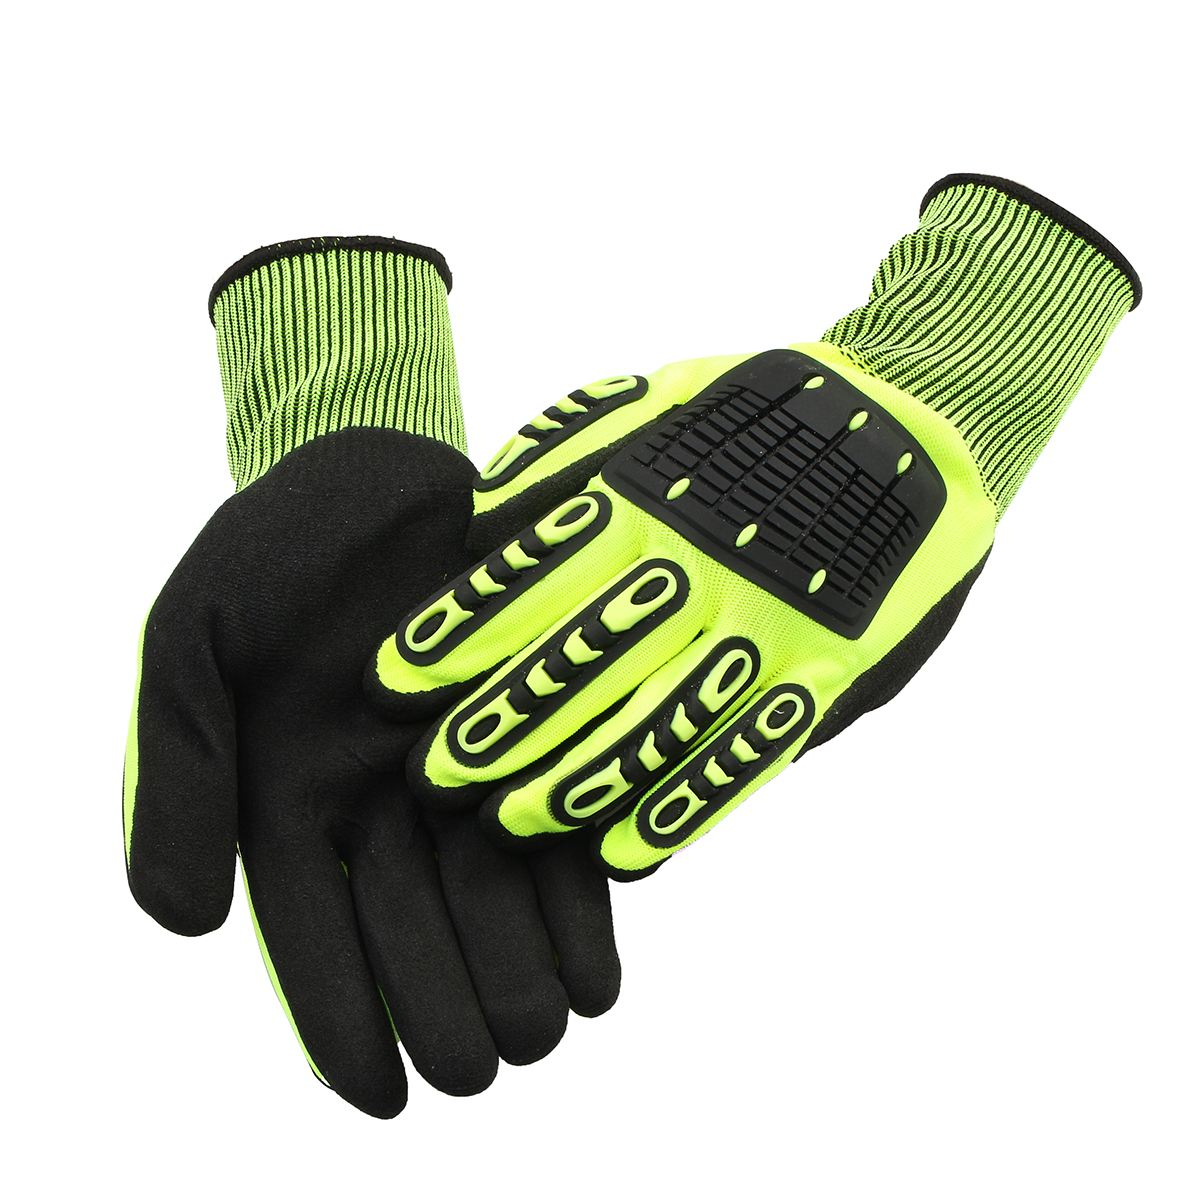 Safurance Anti-Vibration Safety Work Cycle Grip Glove Hand Protection Impact Resistant  Workplace Safety new safurance pro tree carving fall protection rock climbing equip gear rappelling harness workplace safety